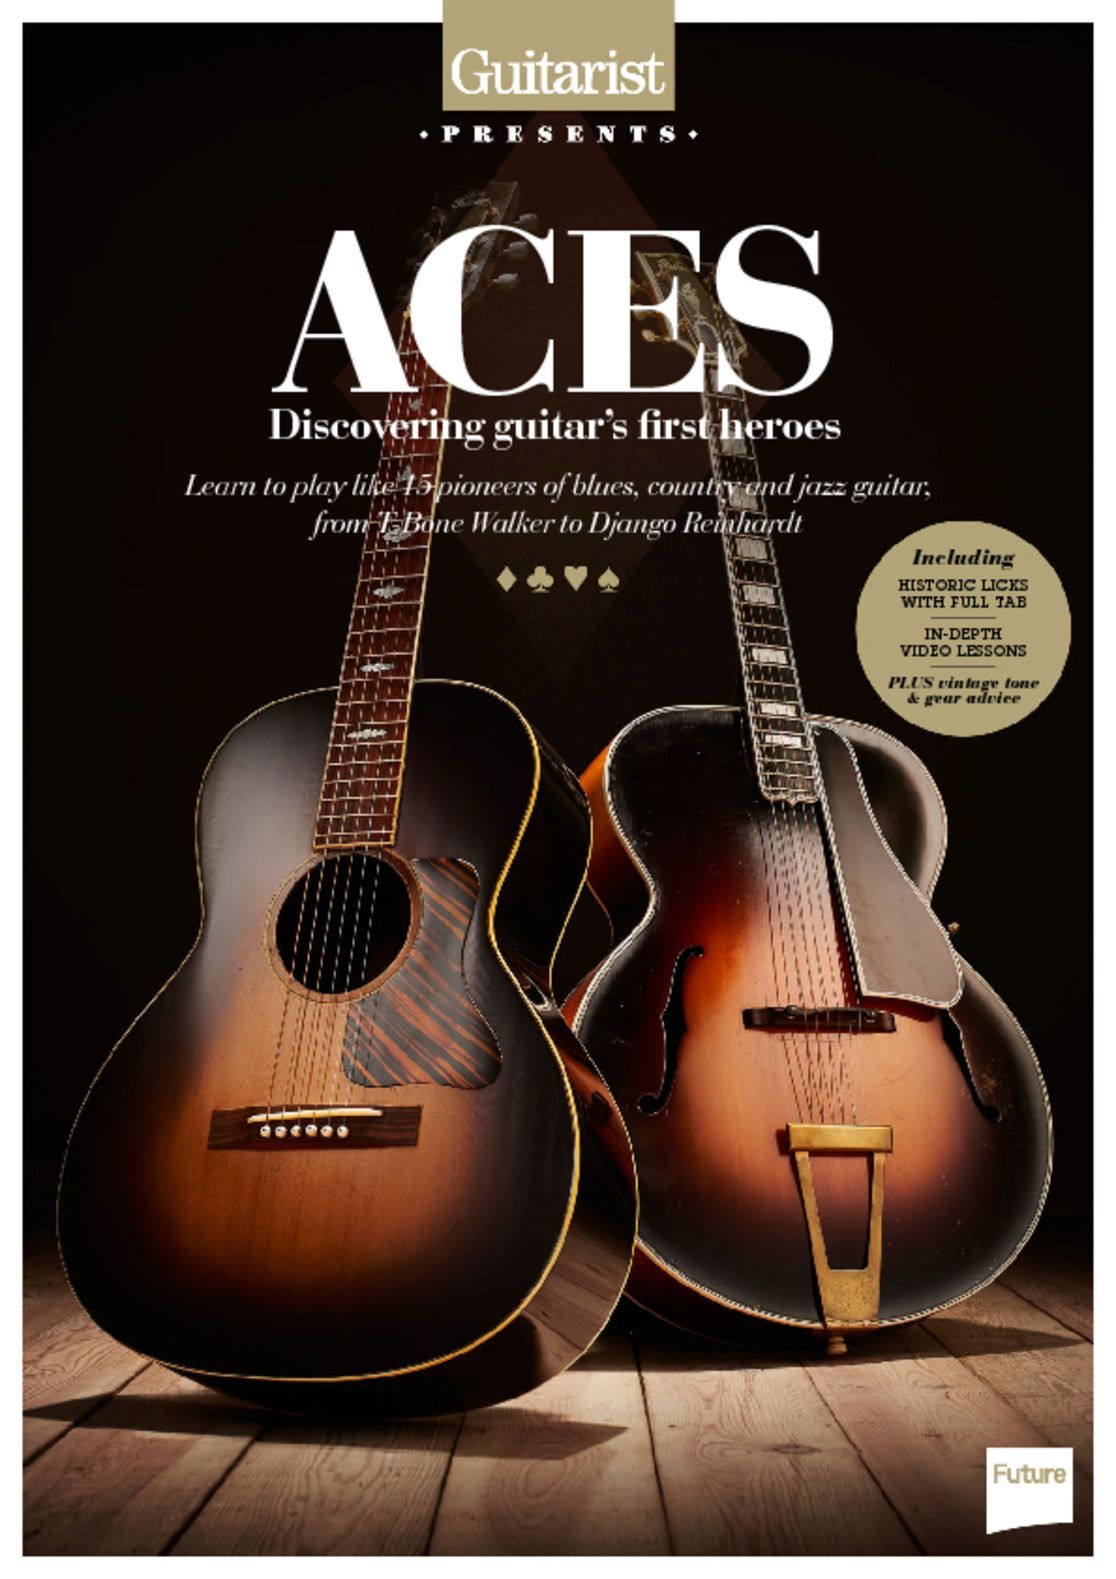 Aces Discovering Guitars First Heroes Digital